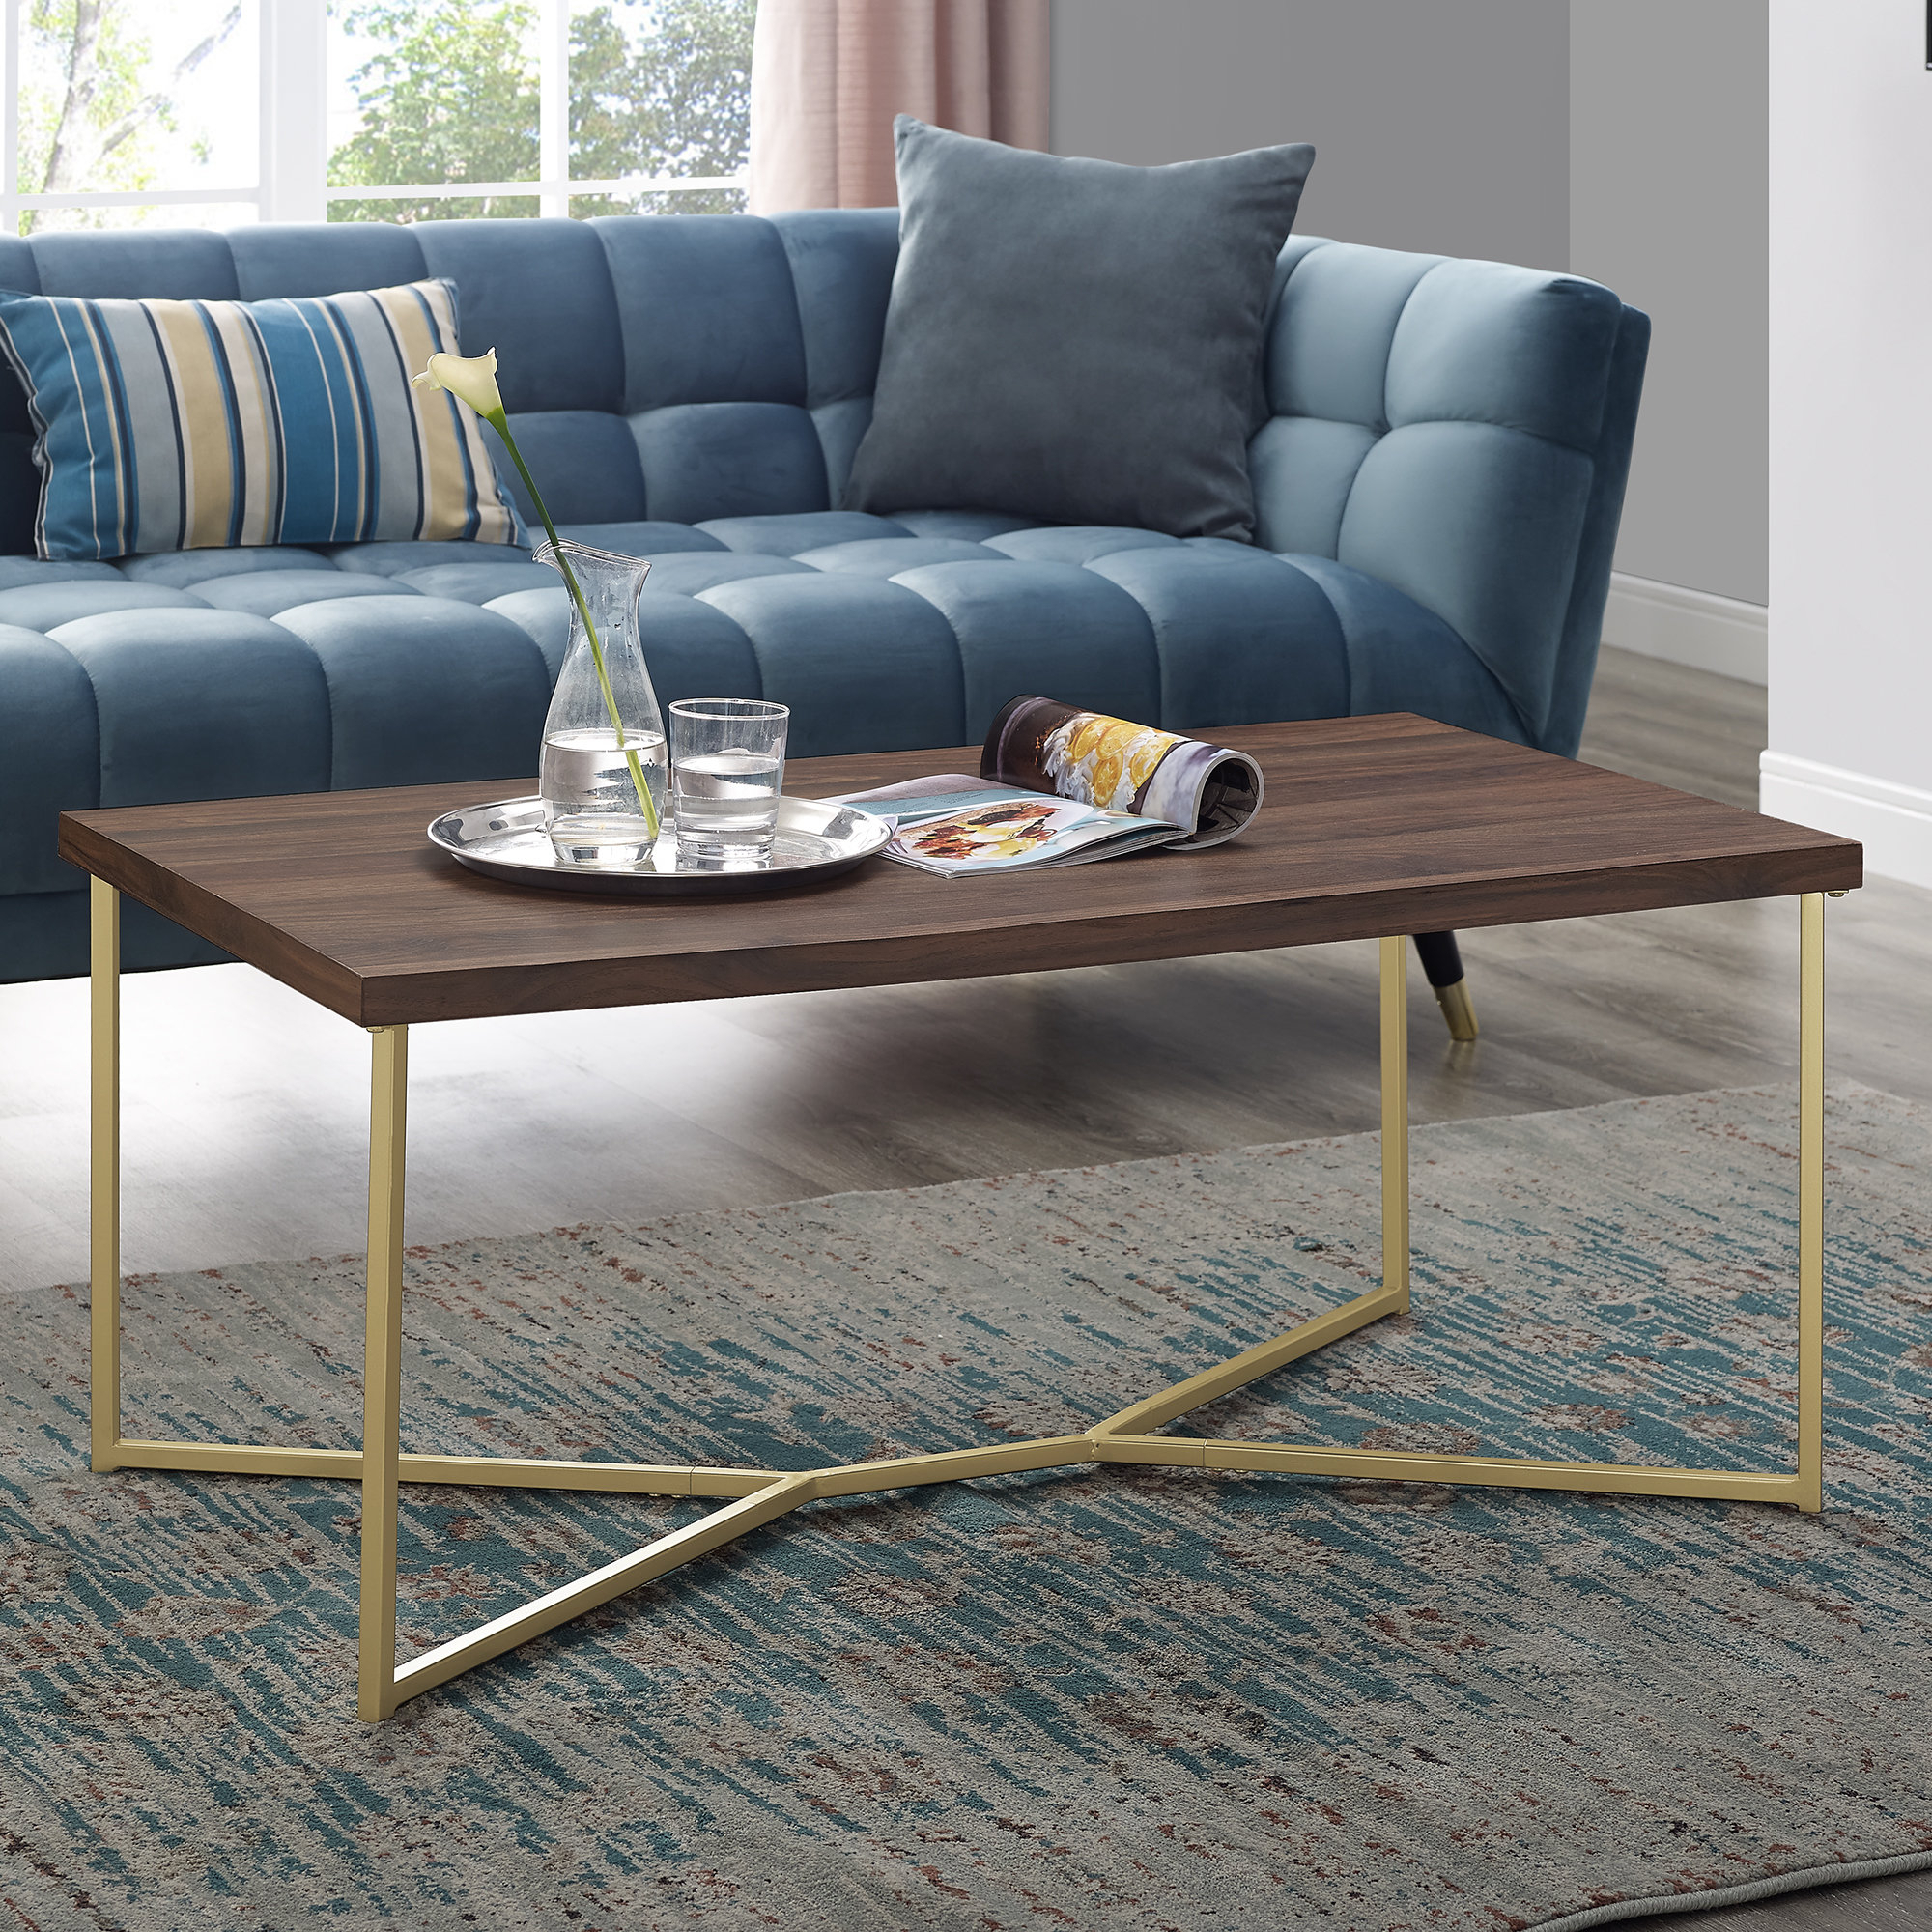 Marble/granite Top Coffee Tables You'll Love (Gallery 15 of 20)